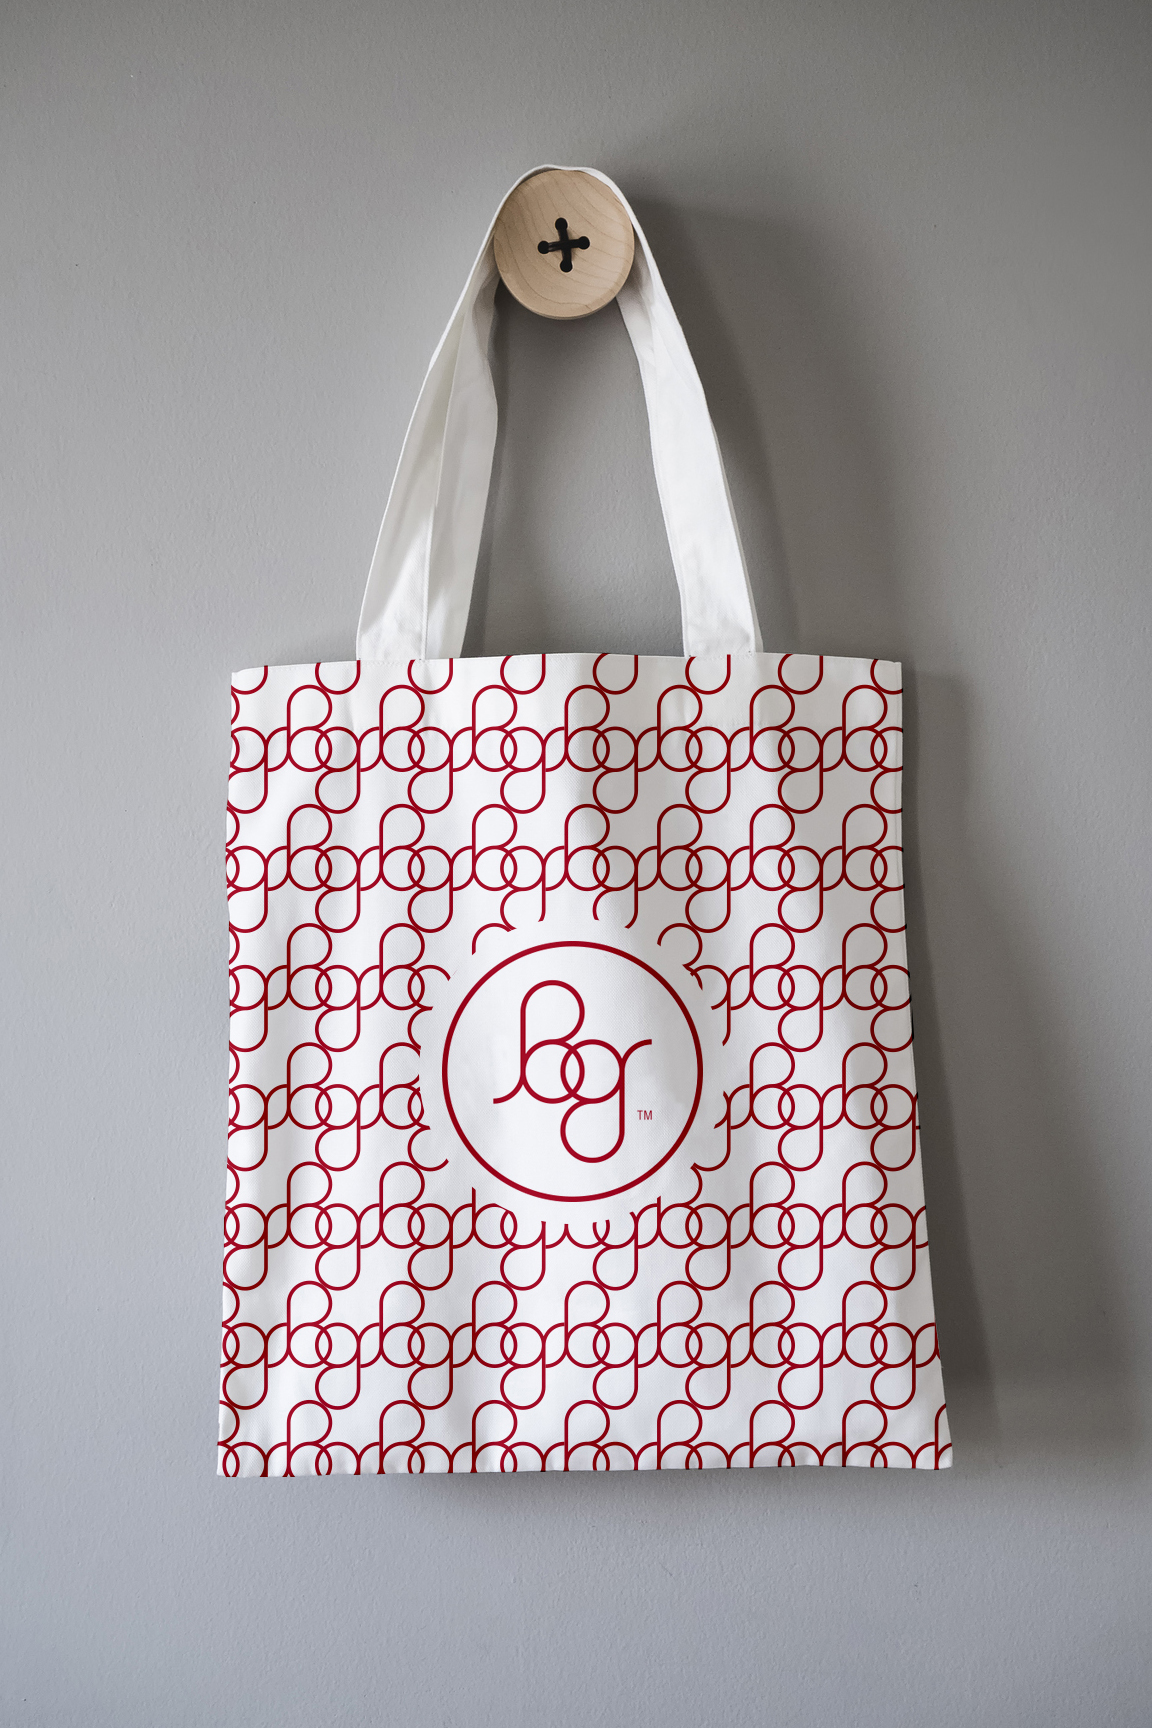 Graphic Design / BG Riley Brand Identity and Logo Application / Tote Bag